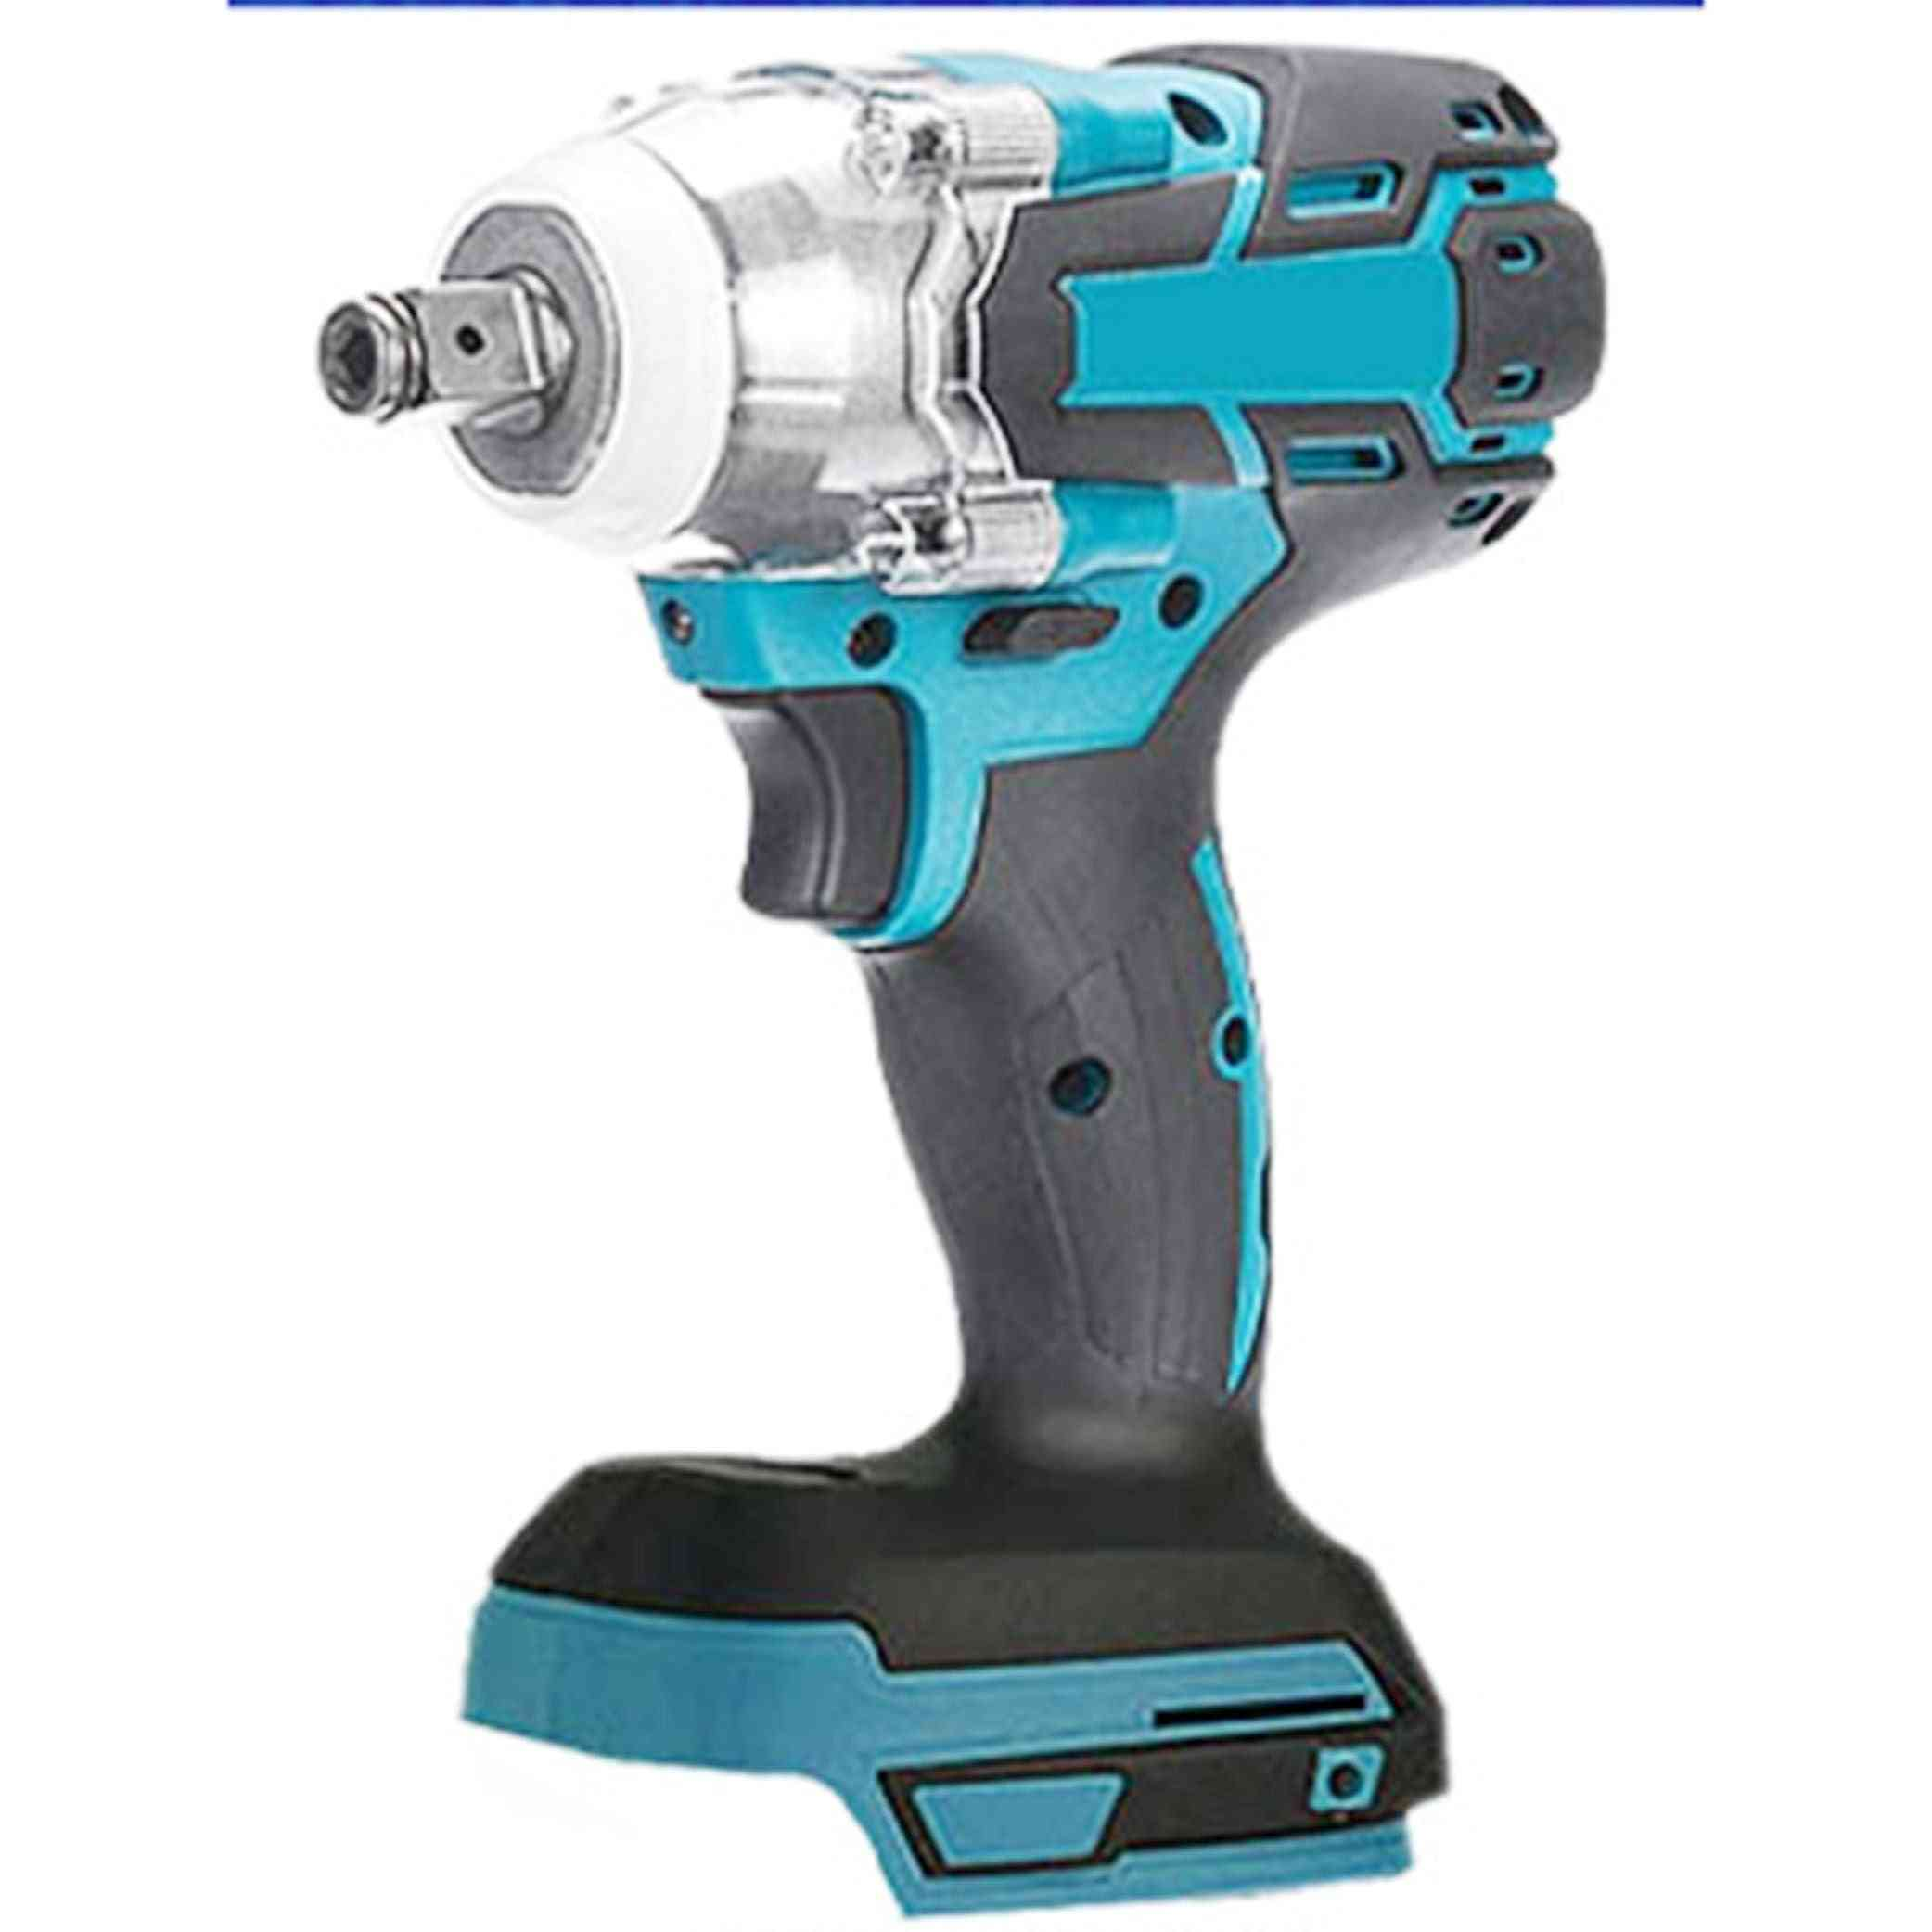 Wrench Power Tool Cordless For Makita Battery Accessories